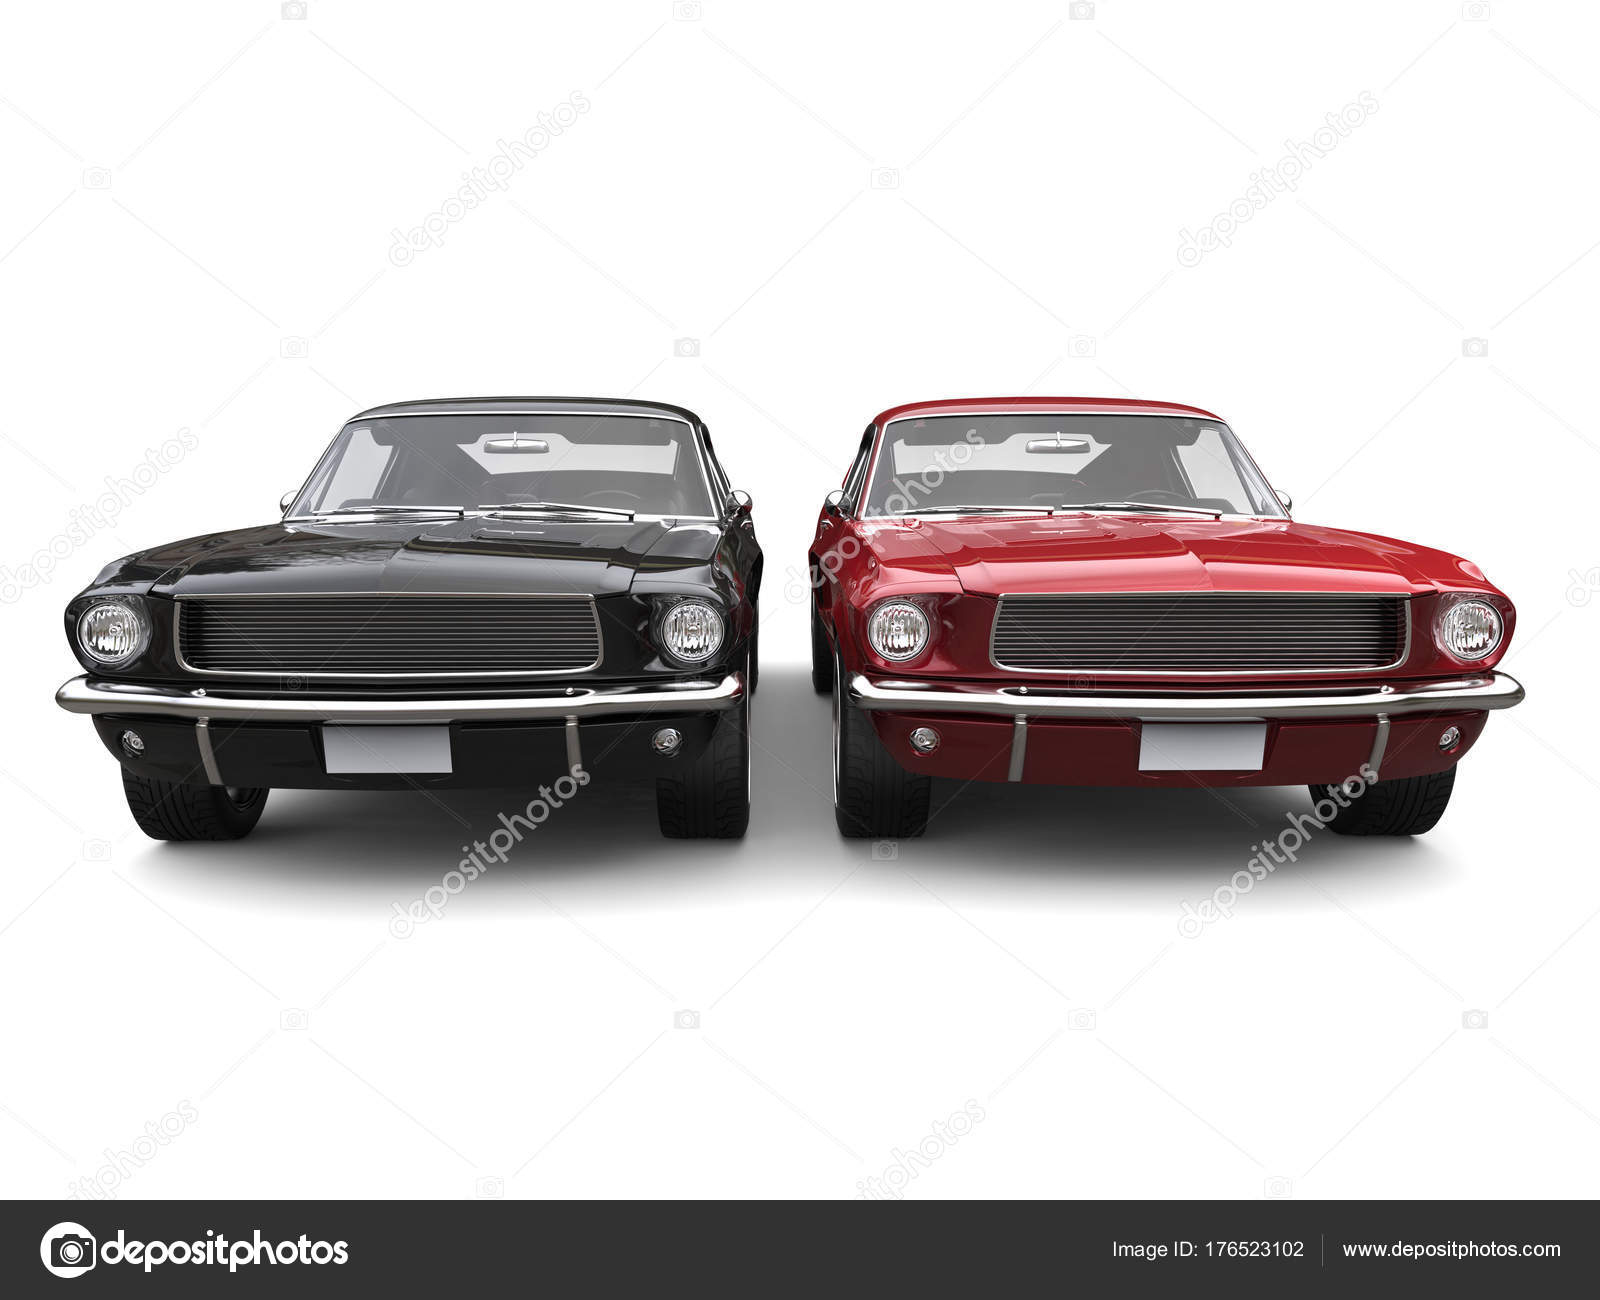 Amazing Vintage American Muscle Cars Red Black — Stock Photo ...